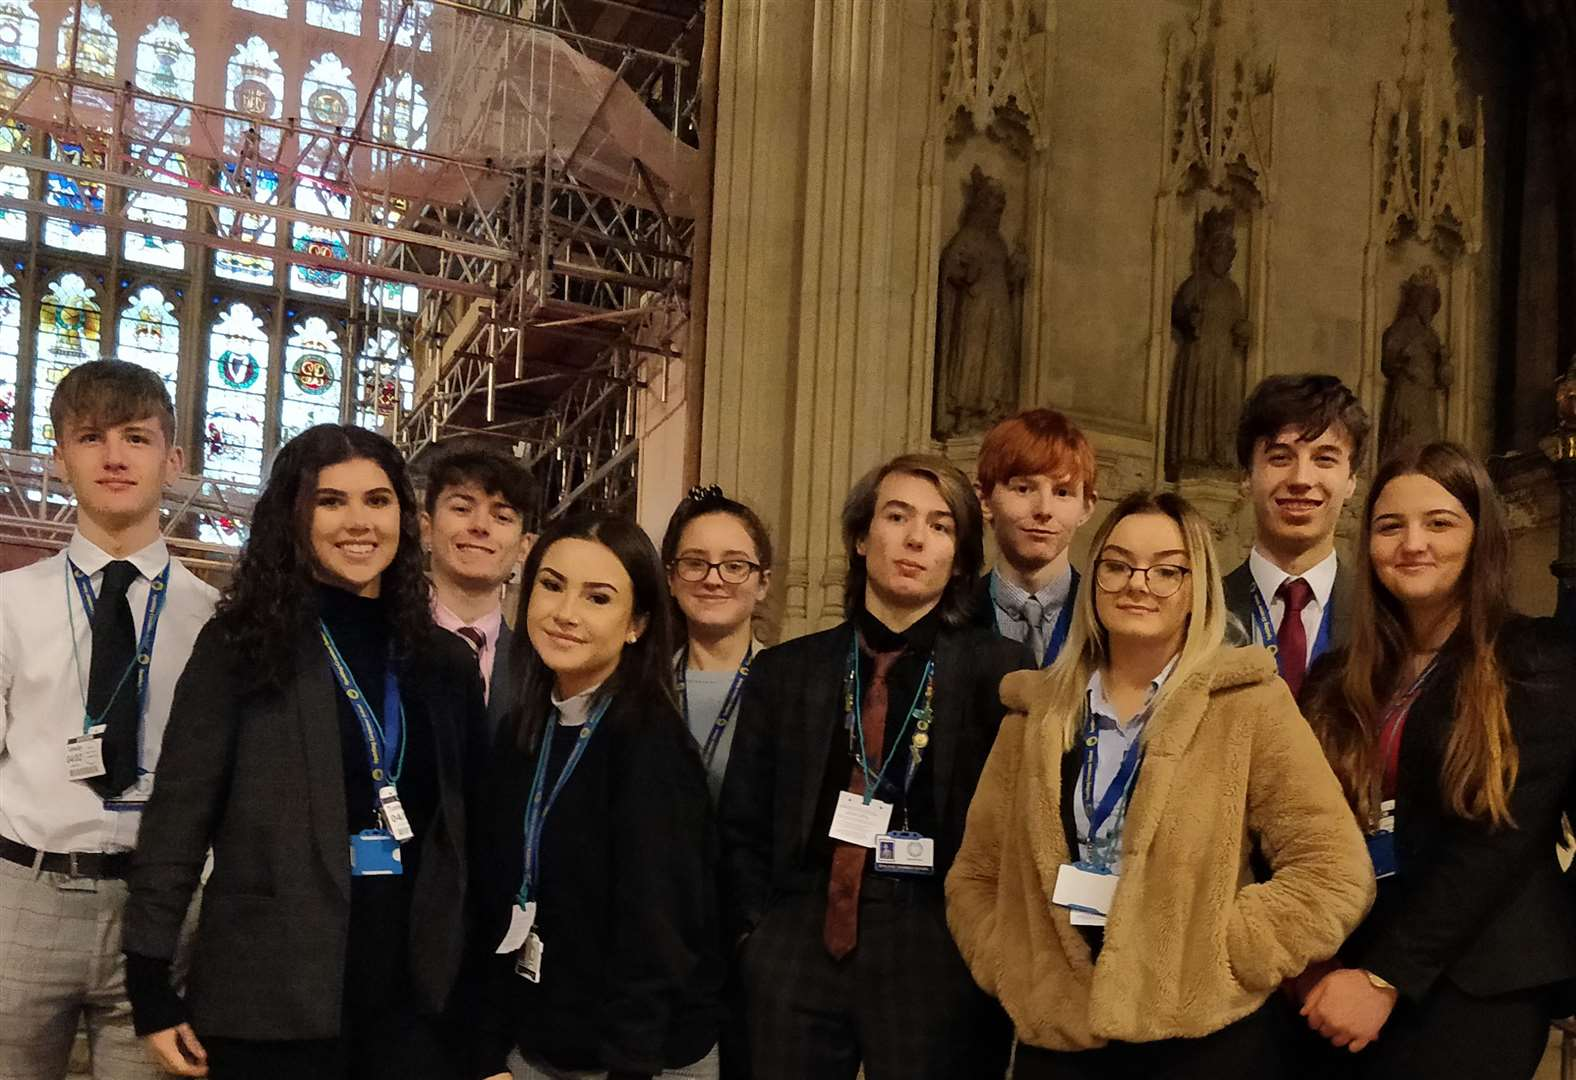 Students visit the Old Bailey